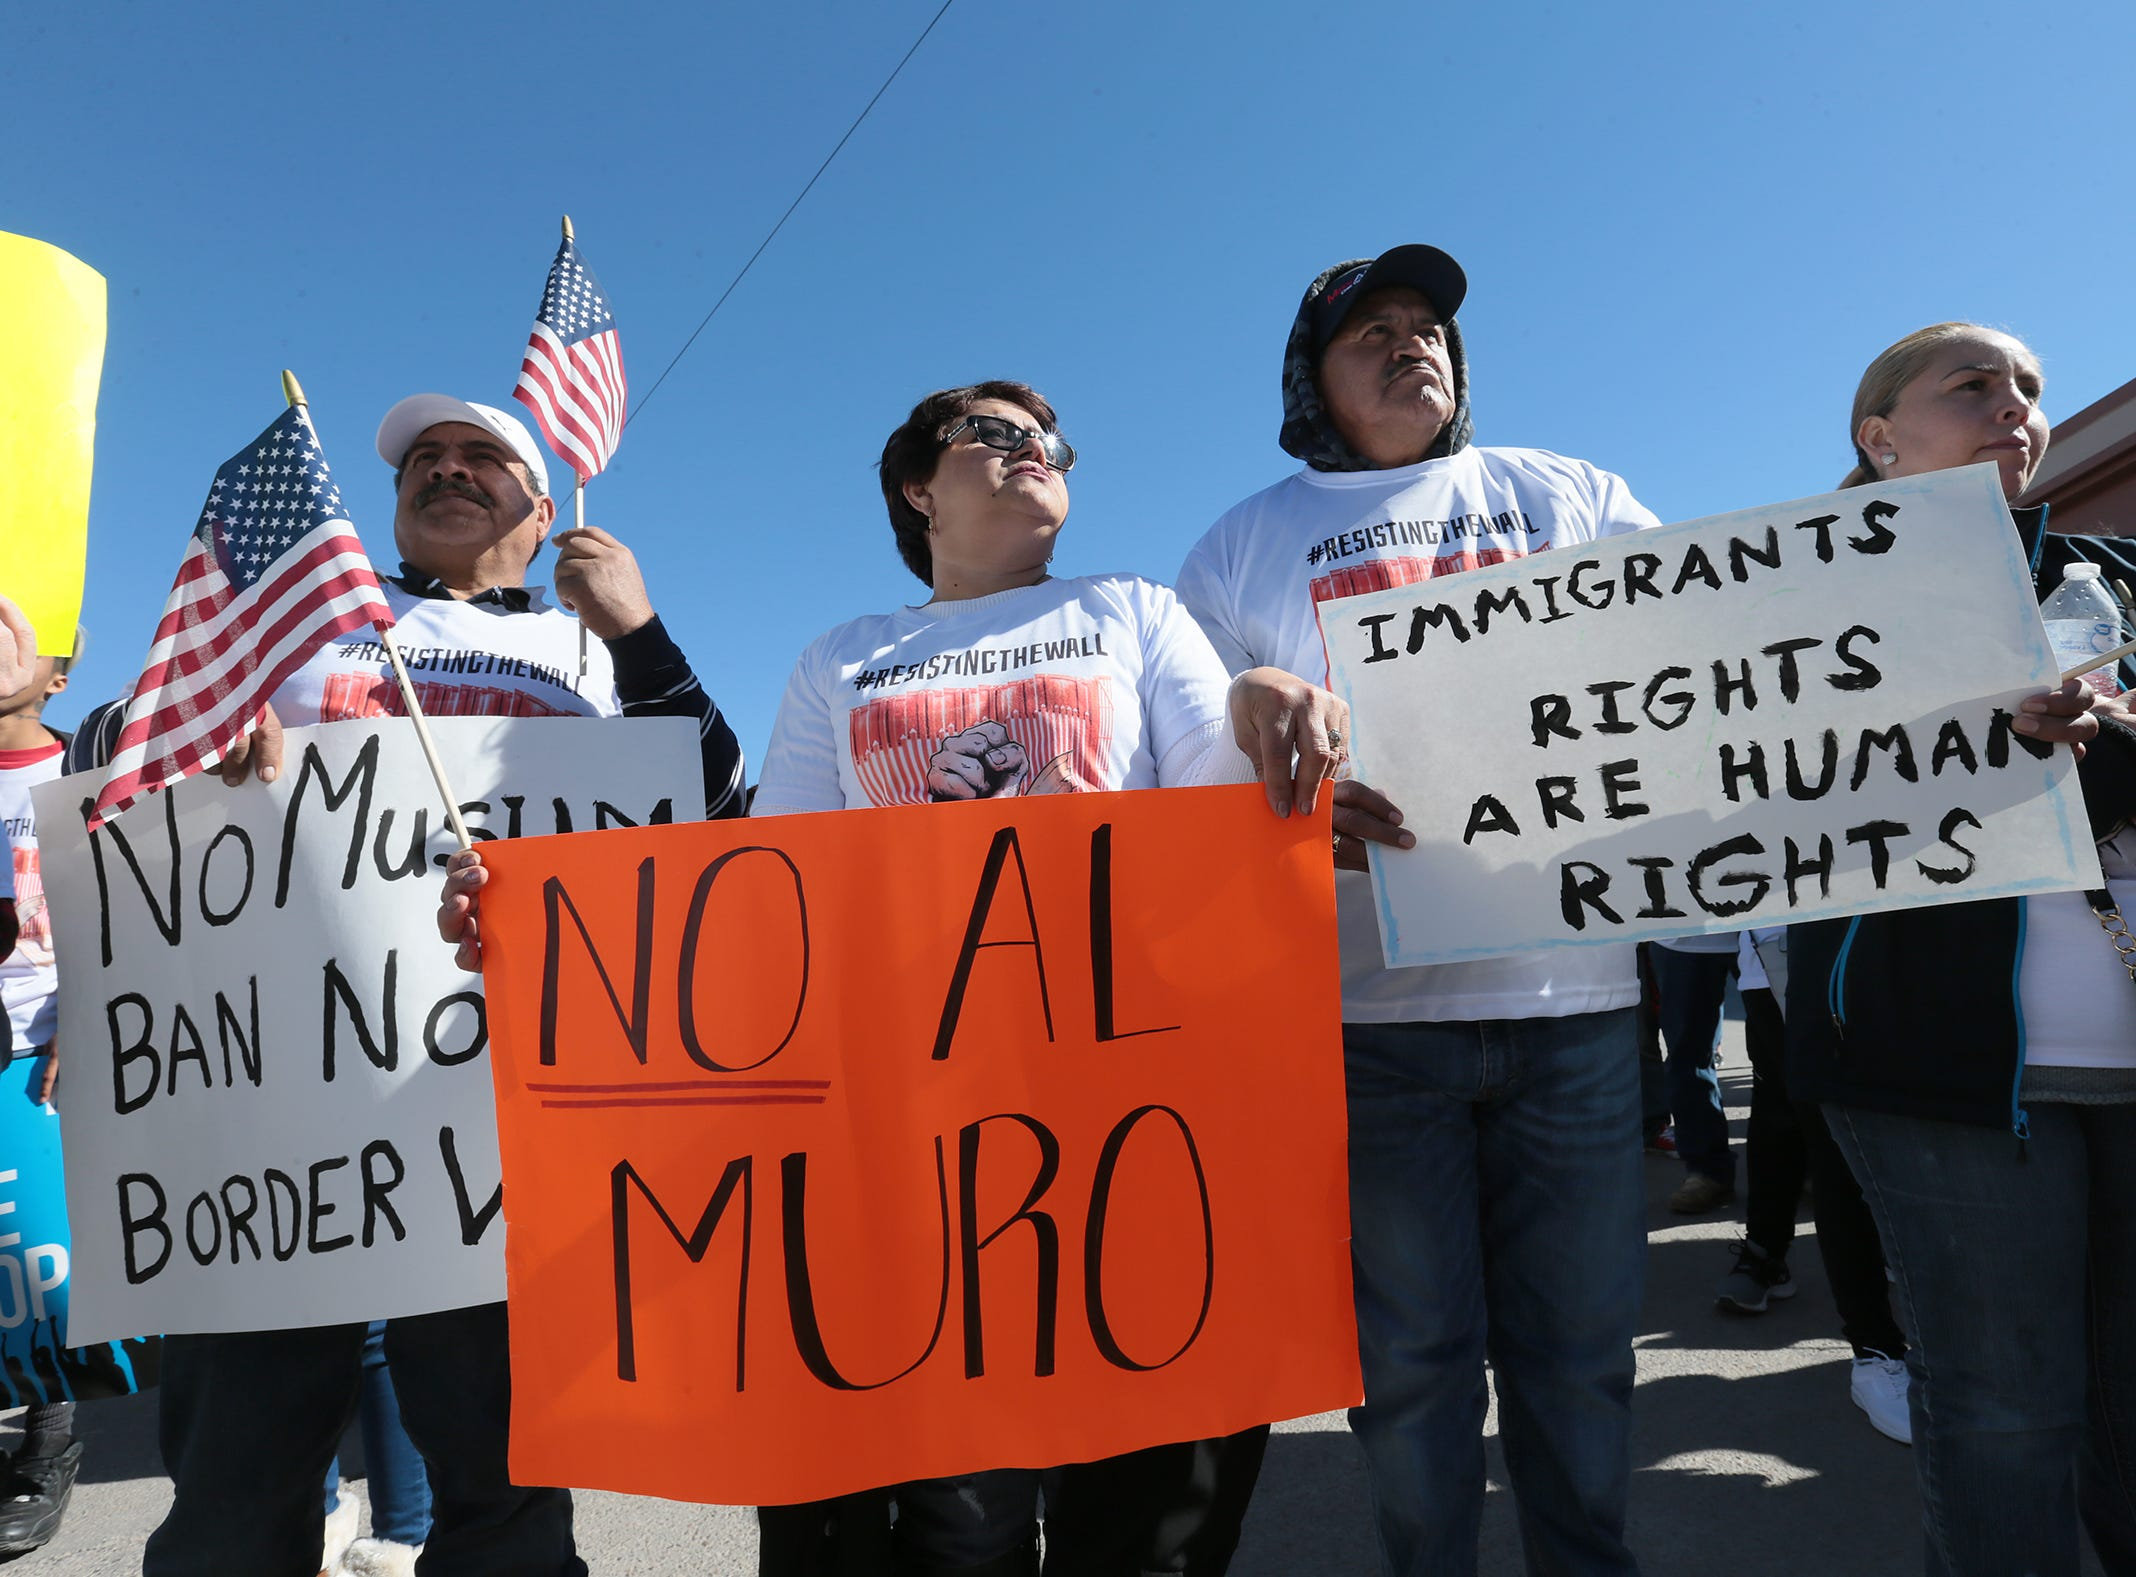 Border Network for Human Rights held a march in downtown El Paso Saturday in protest of the proposed border wall. Hundreds marched from San Jacinto Plaza to the Paso del Norte International Bridge then to Chihuahuita.